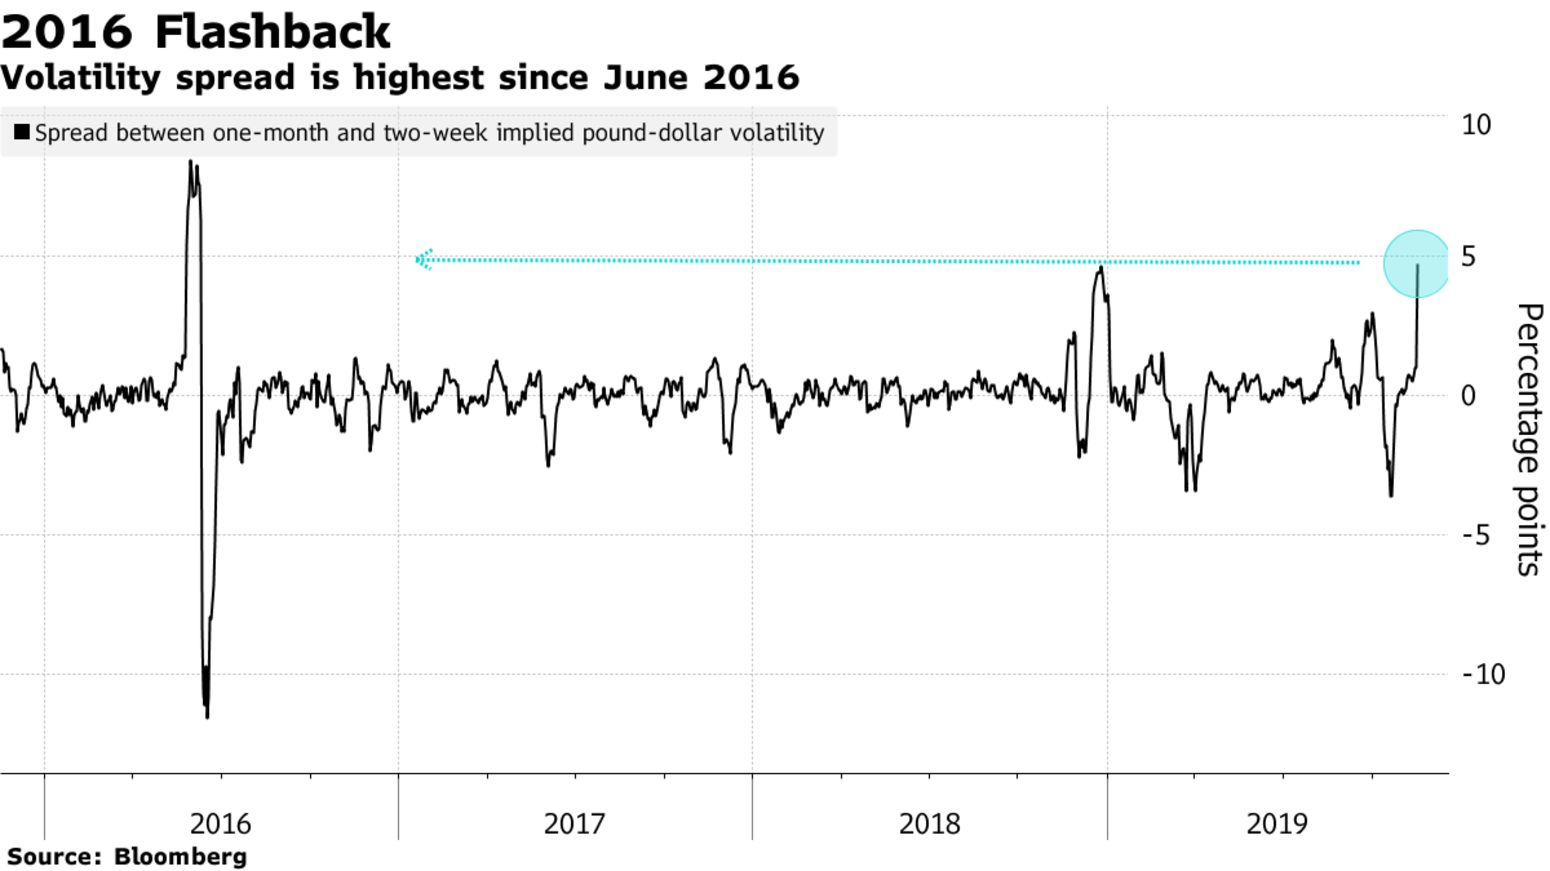 Volatility spread is highest since June 2016